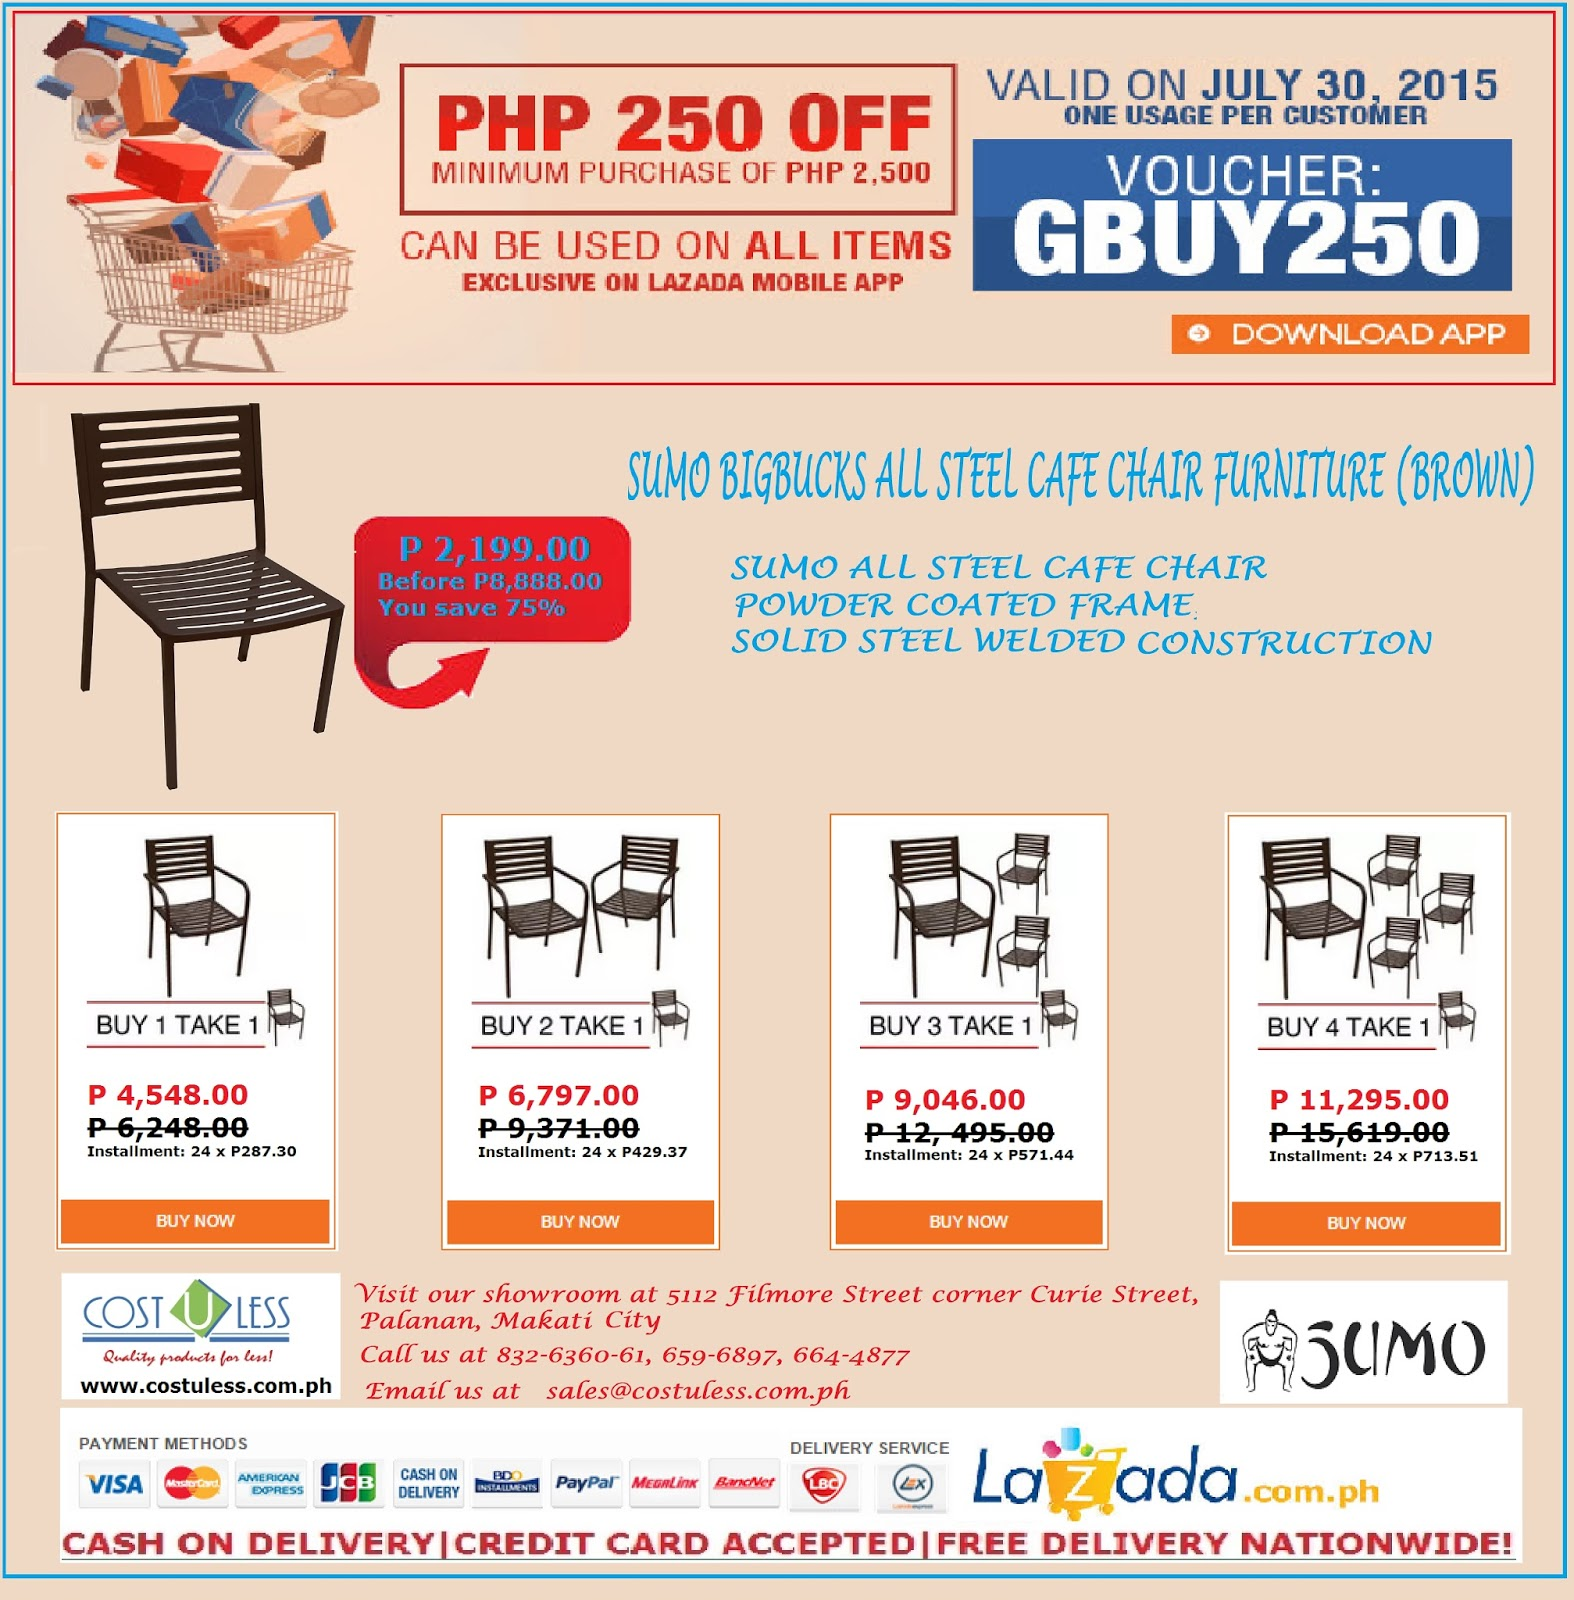 aluminum chairs for sale philippines. p250.00 discount on sumo aluminum bigbucks chair chairs for sale philippines o